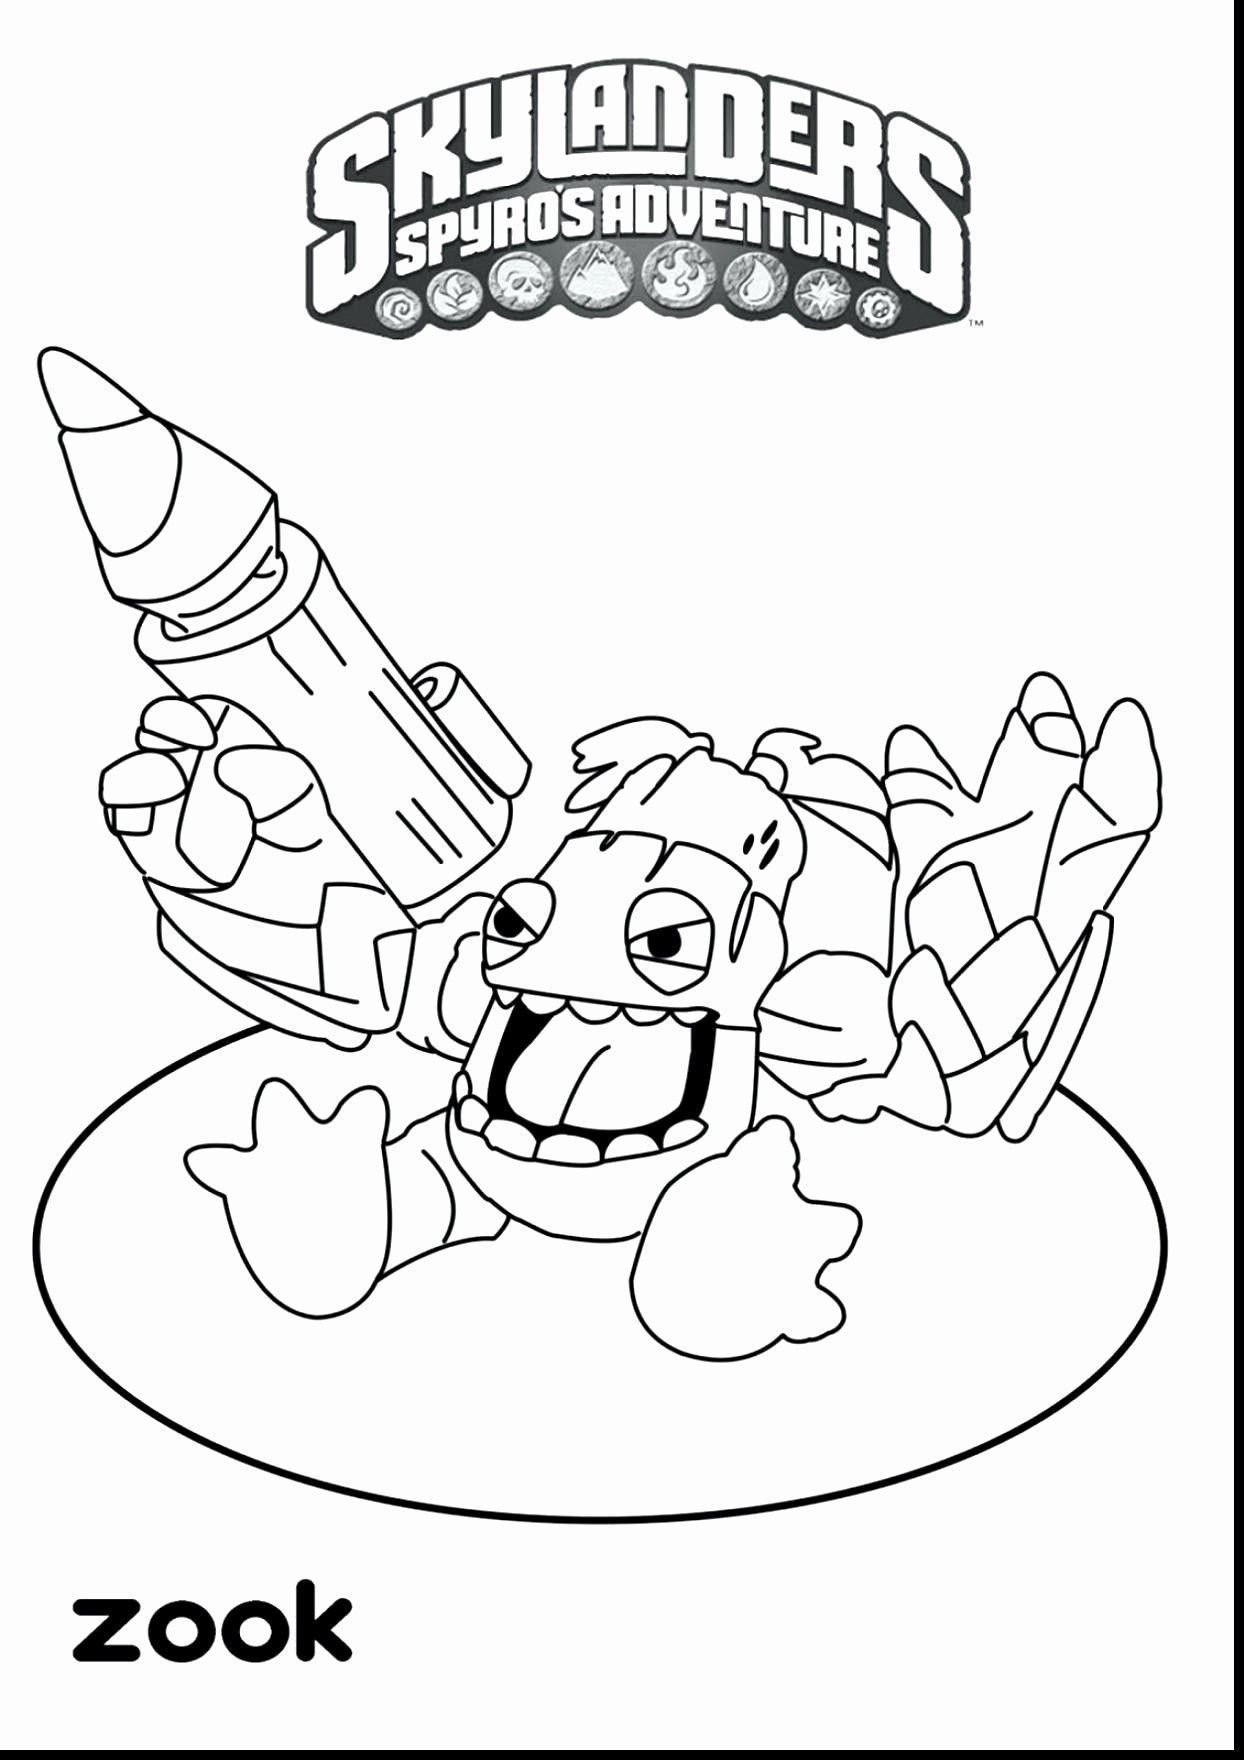 Ausmalbilder Weihnachten Hello Kitty Inspirierend Hello Kitty Coloring Pages Best Lovely Free Coloring Galerie